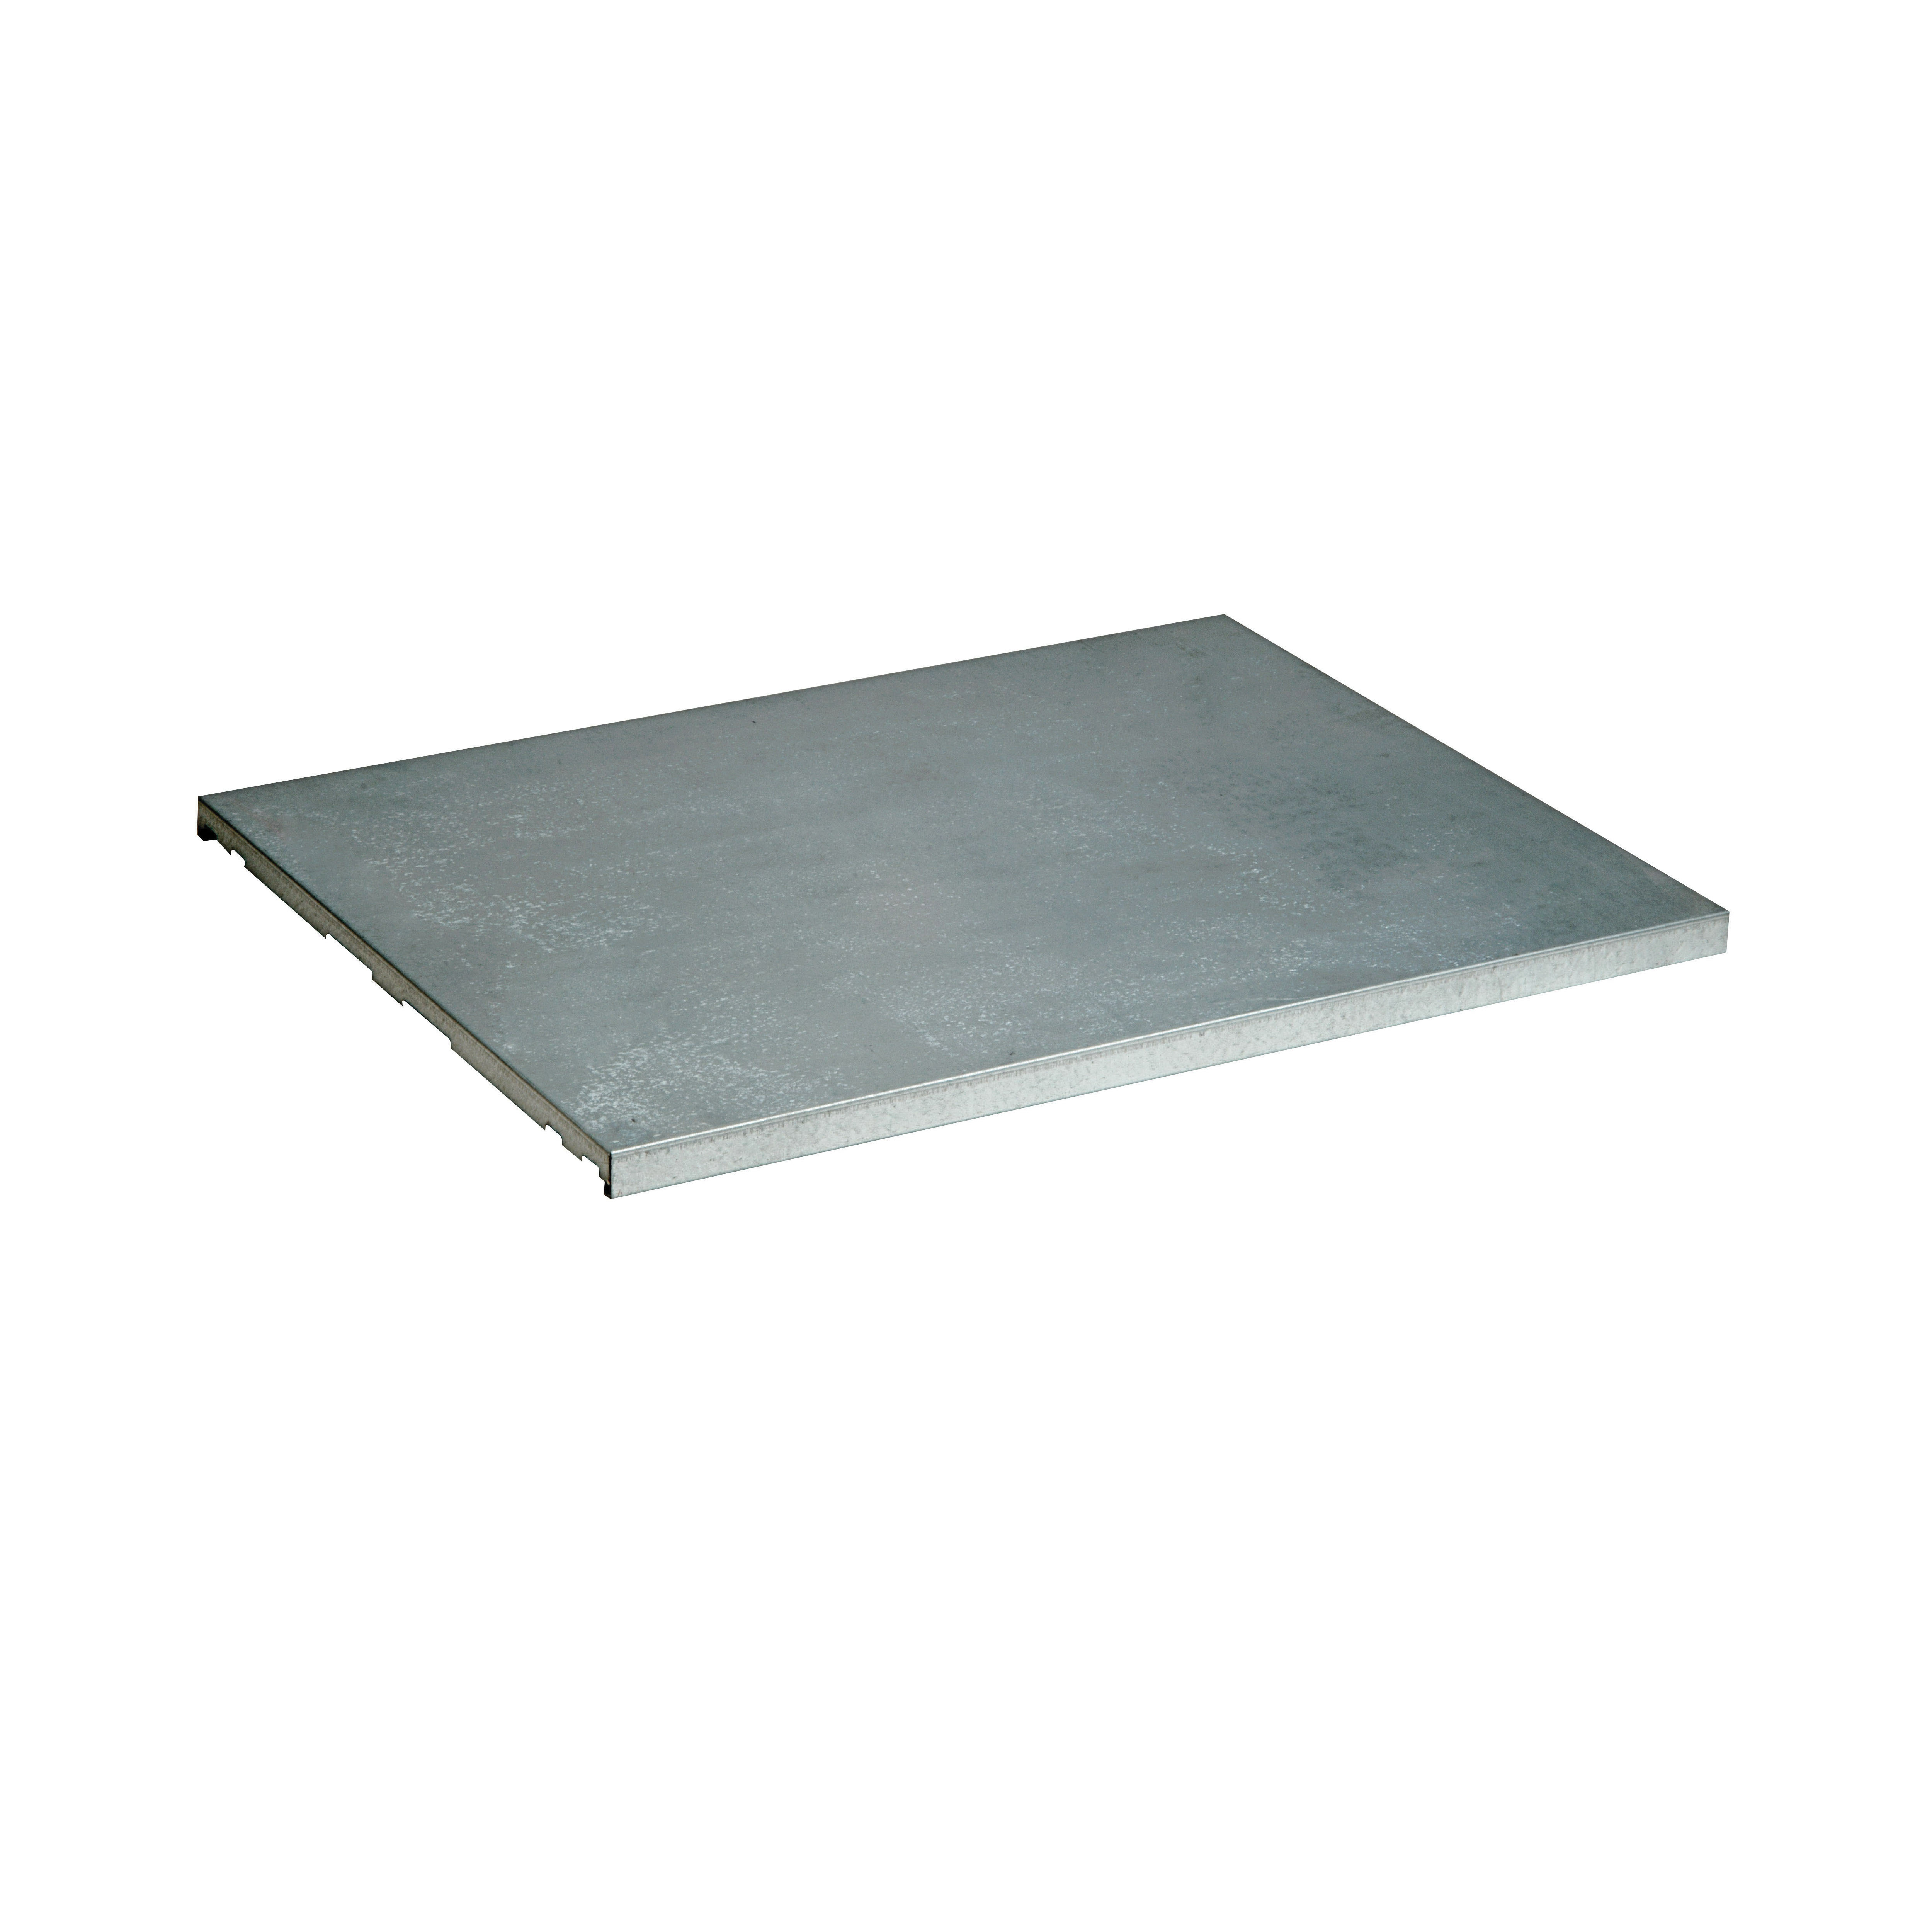 Justrite® SpillSlope® 29945 Extra Shelf, For Use With 90 gal 43 in W Safety Cabinet, Silver